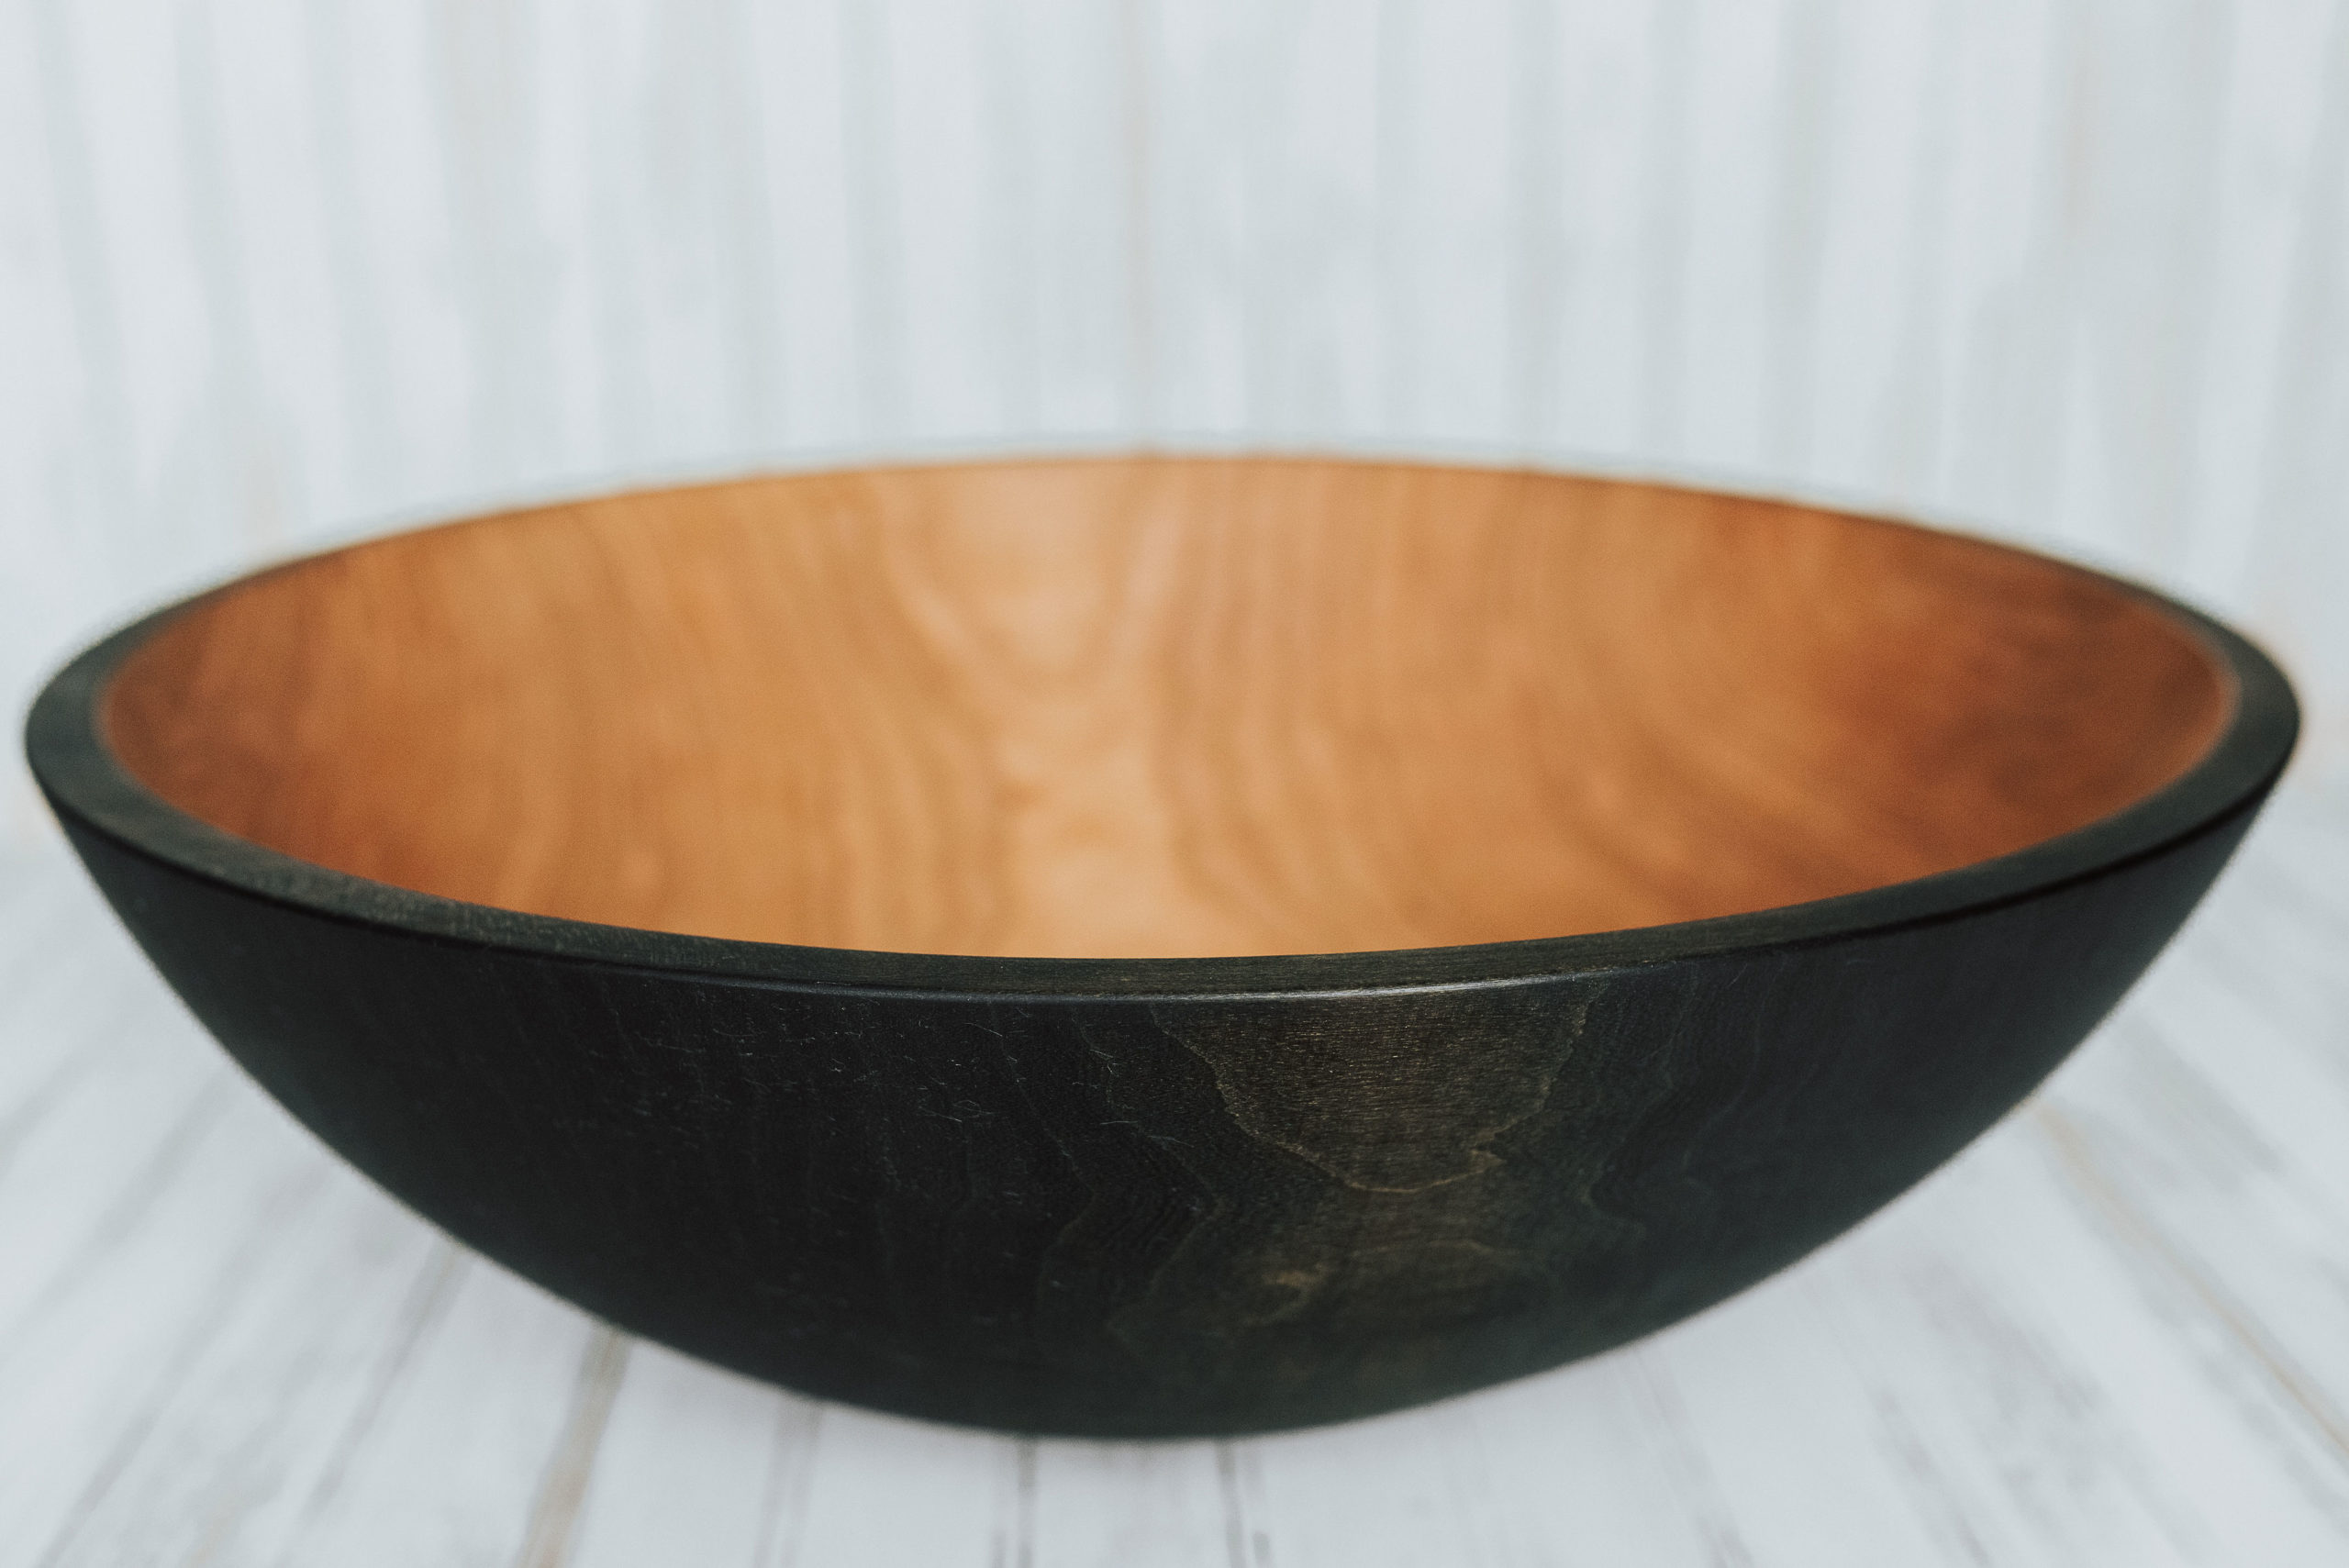 A 20-inch ebonized wooden bowl from the Holland Bowl Mill